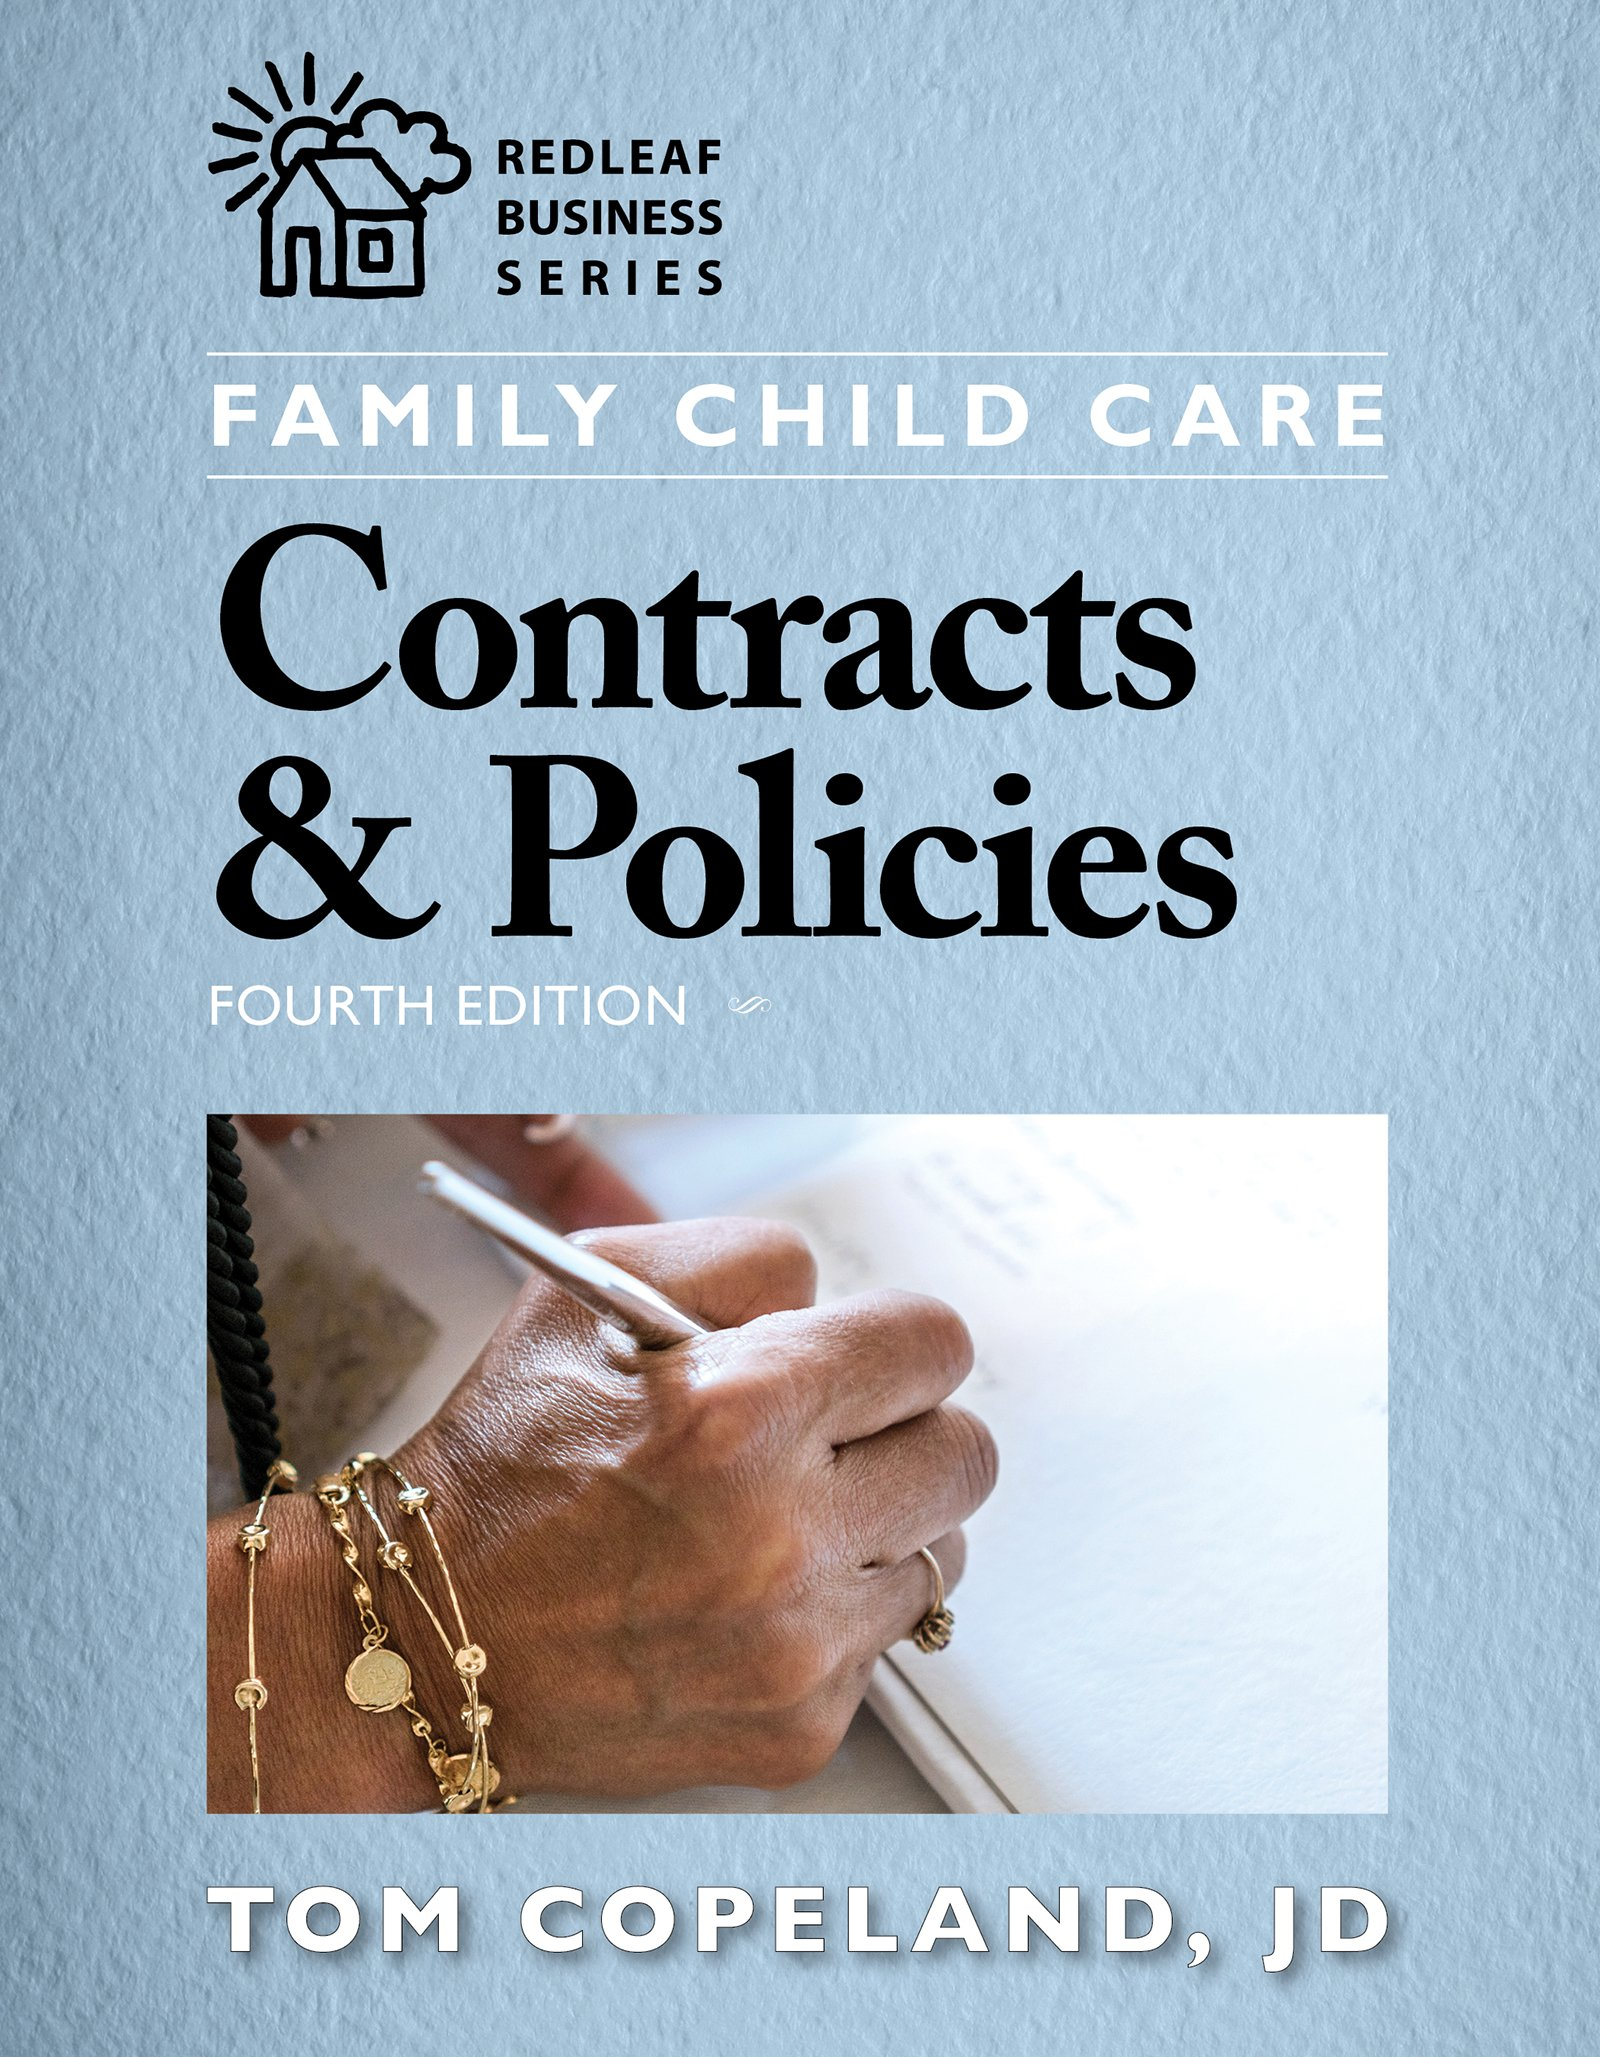 Family Child Care Contracts & Policies, Fourth Edition (Redleaf Press Business Series)